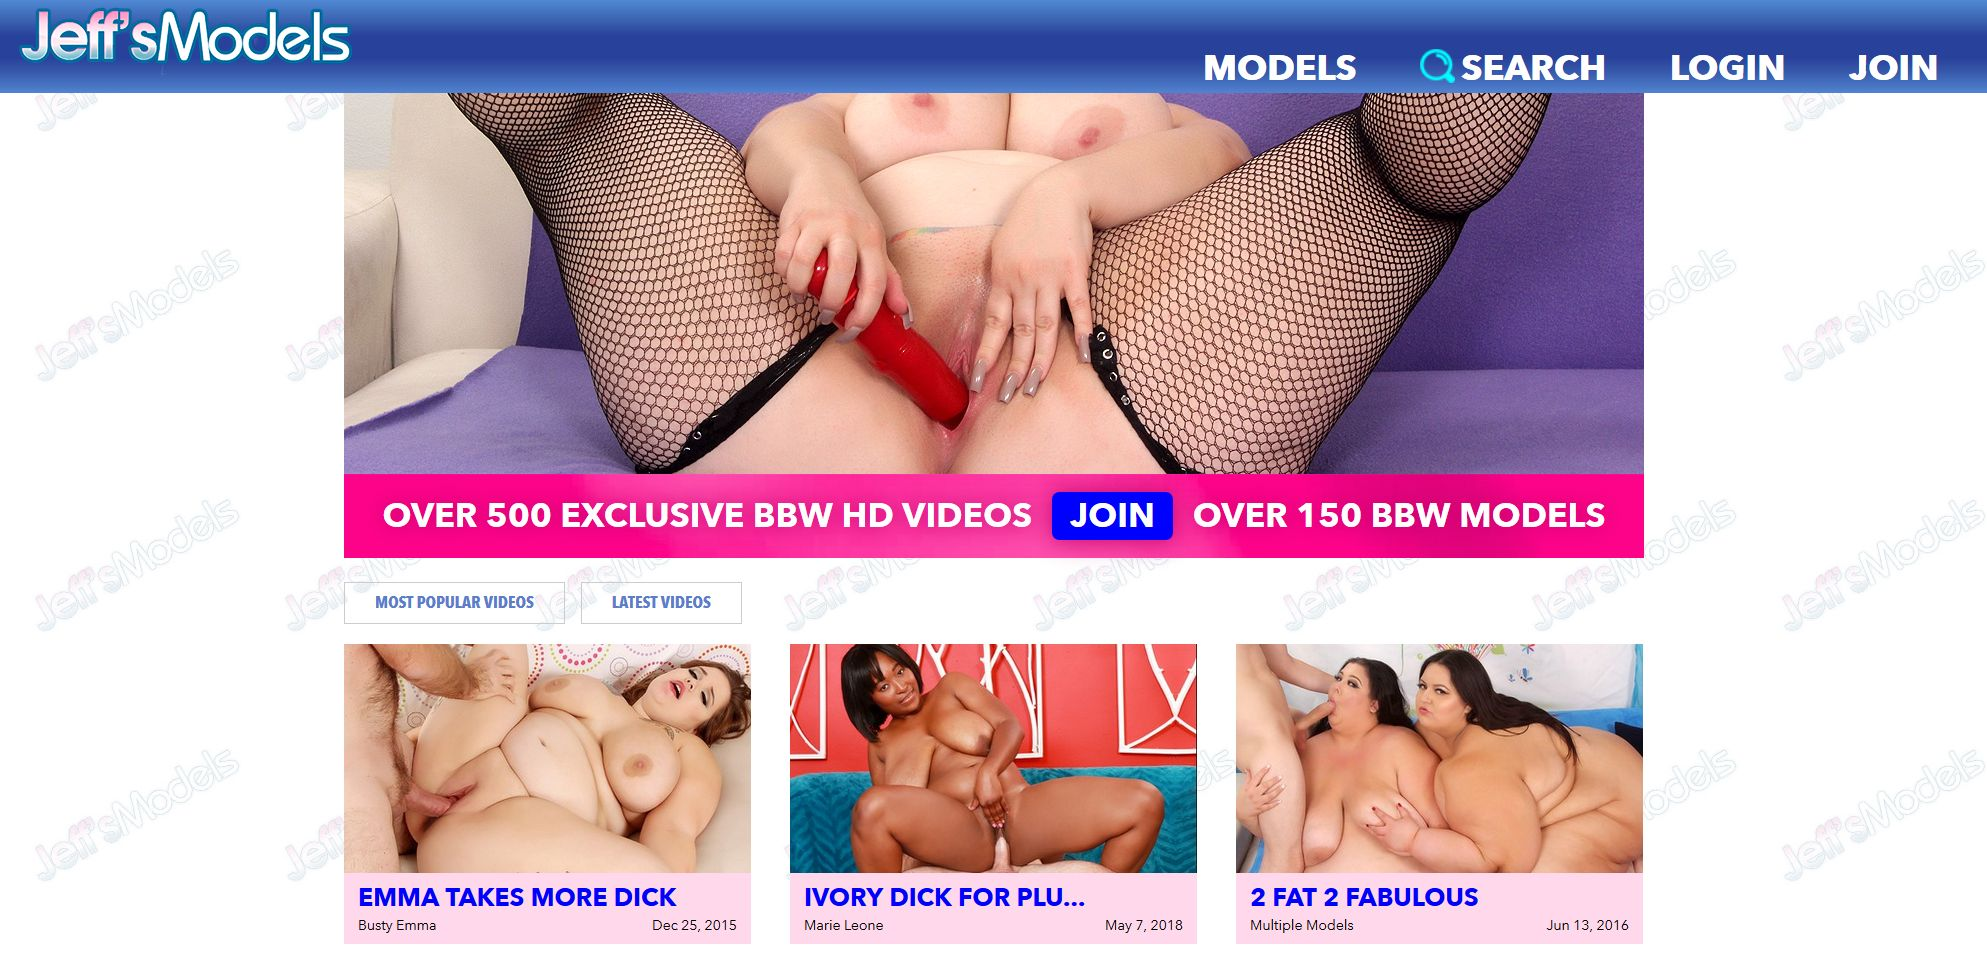 absolutley free shared member password for jeffsmodels